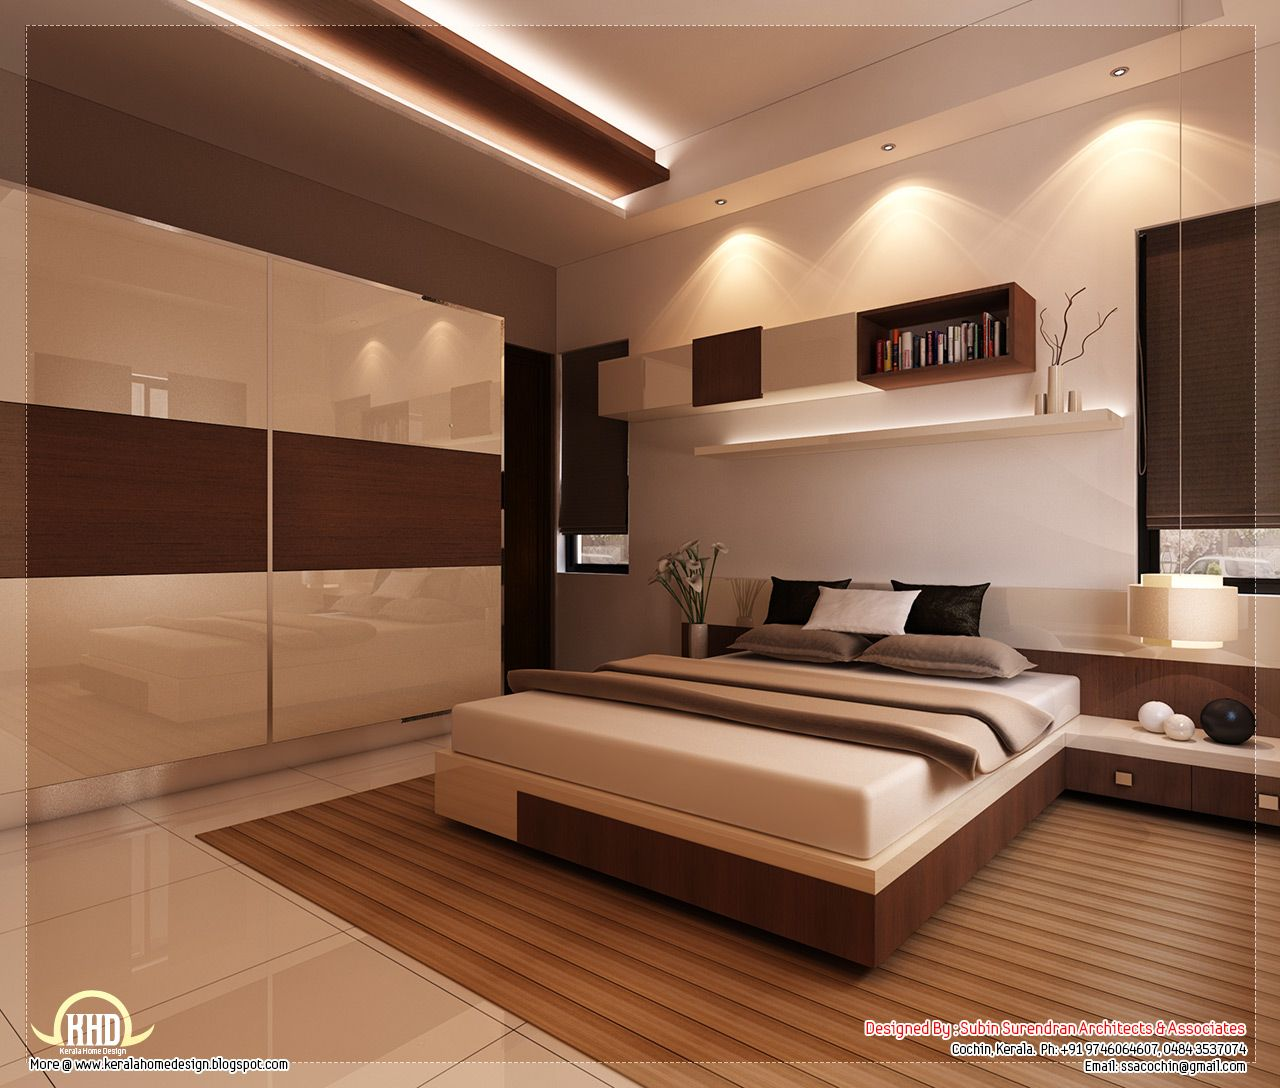 Beautiful home interior designs in 2019 | Bedroom bed design ...